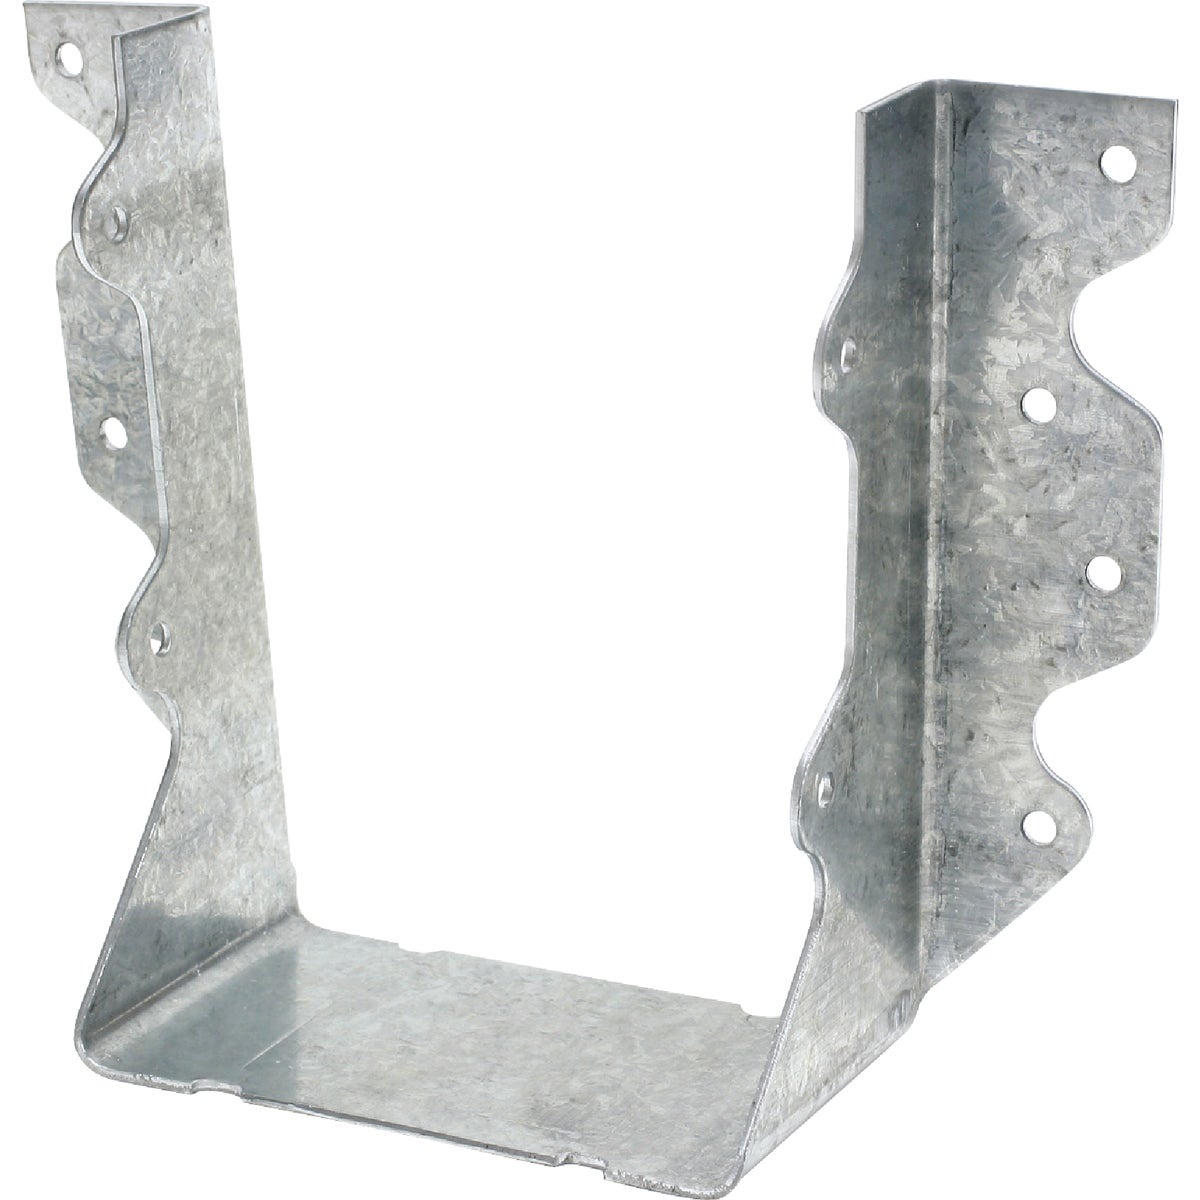 4X6 JOIST HANGER - U46 by Simpson Strong Tie